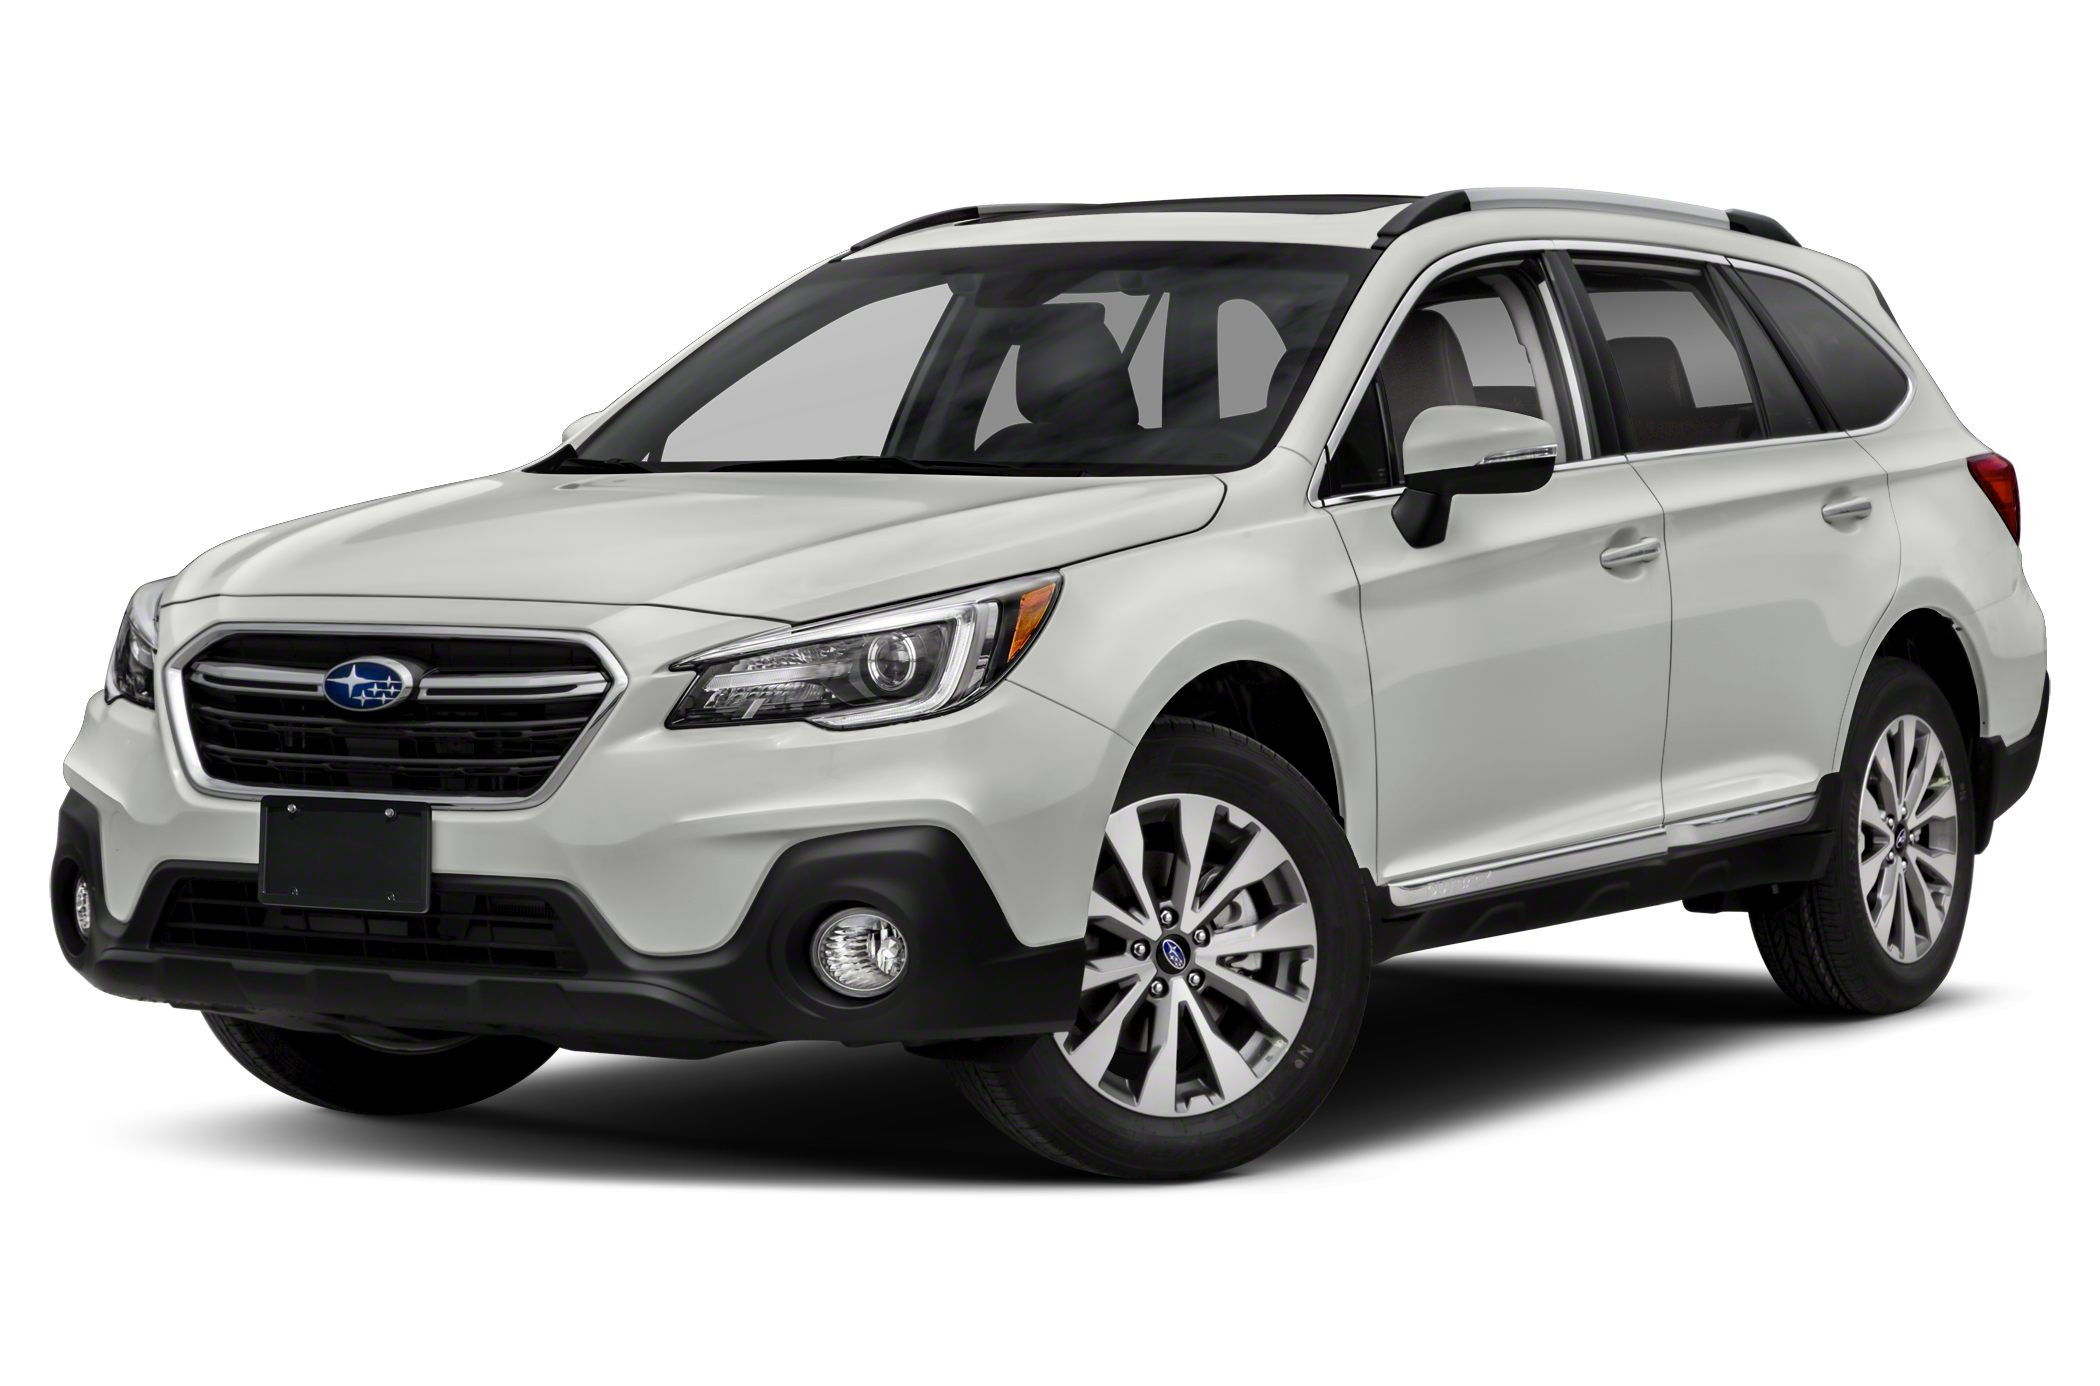 2019 Subaru Outback 3.6R Touring 4Dr All-Wheel Drive Pricing And Options - 2019 Subaru Outback 3.6R Owners Manual